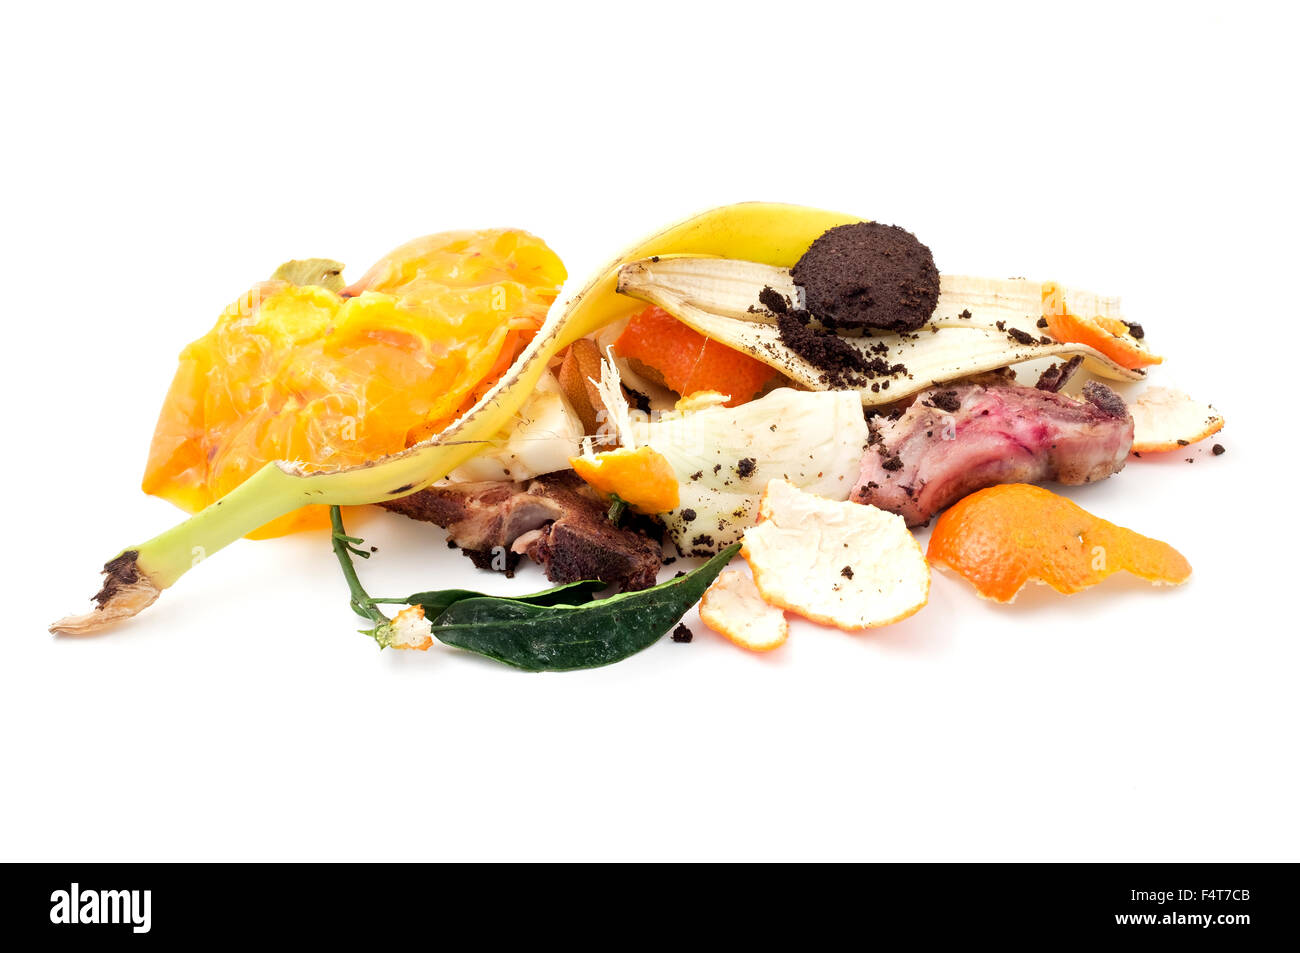 Surströmming Australia Rotting Food Stock Photos And Rotting Food Stock Images Alamy